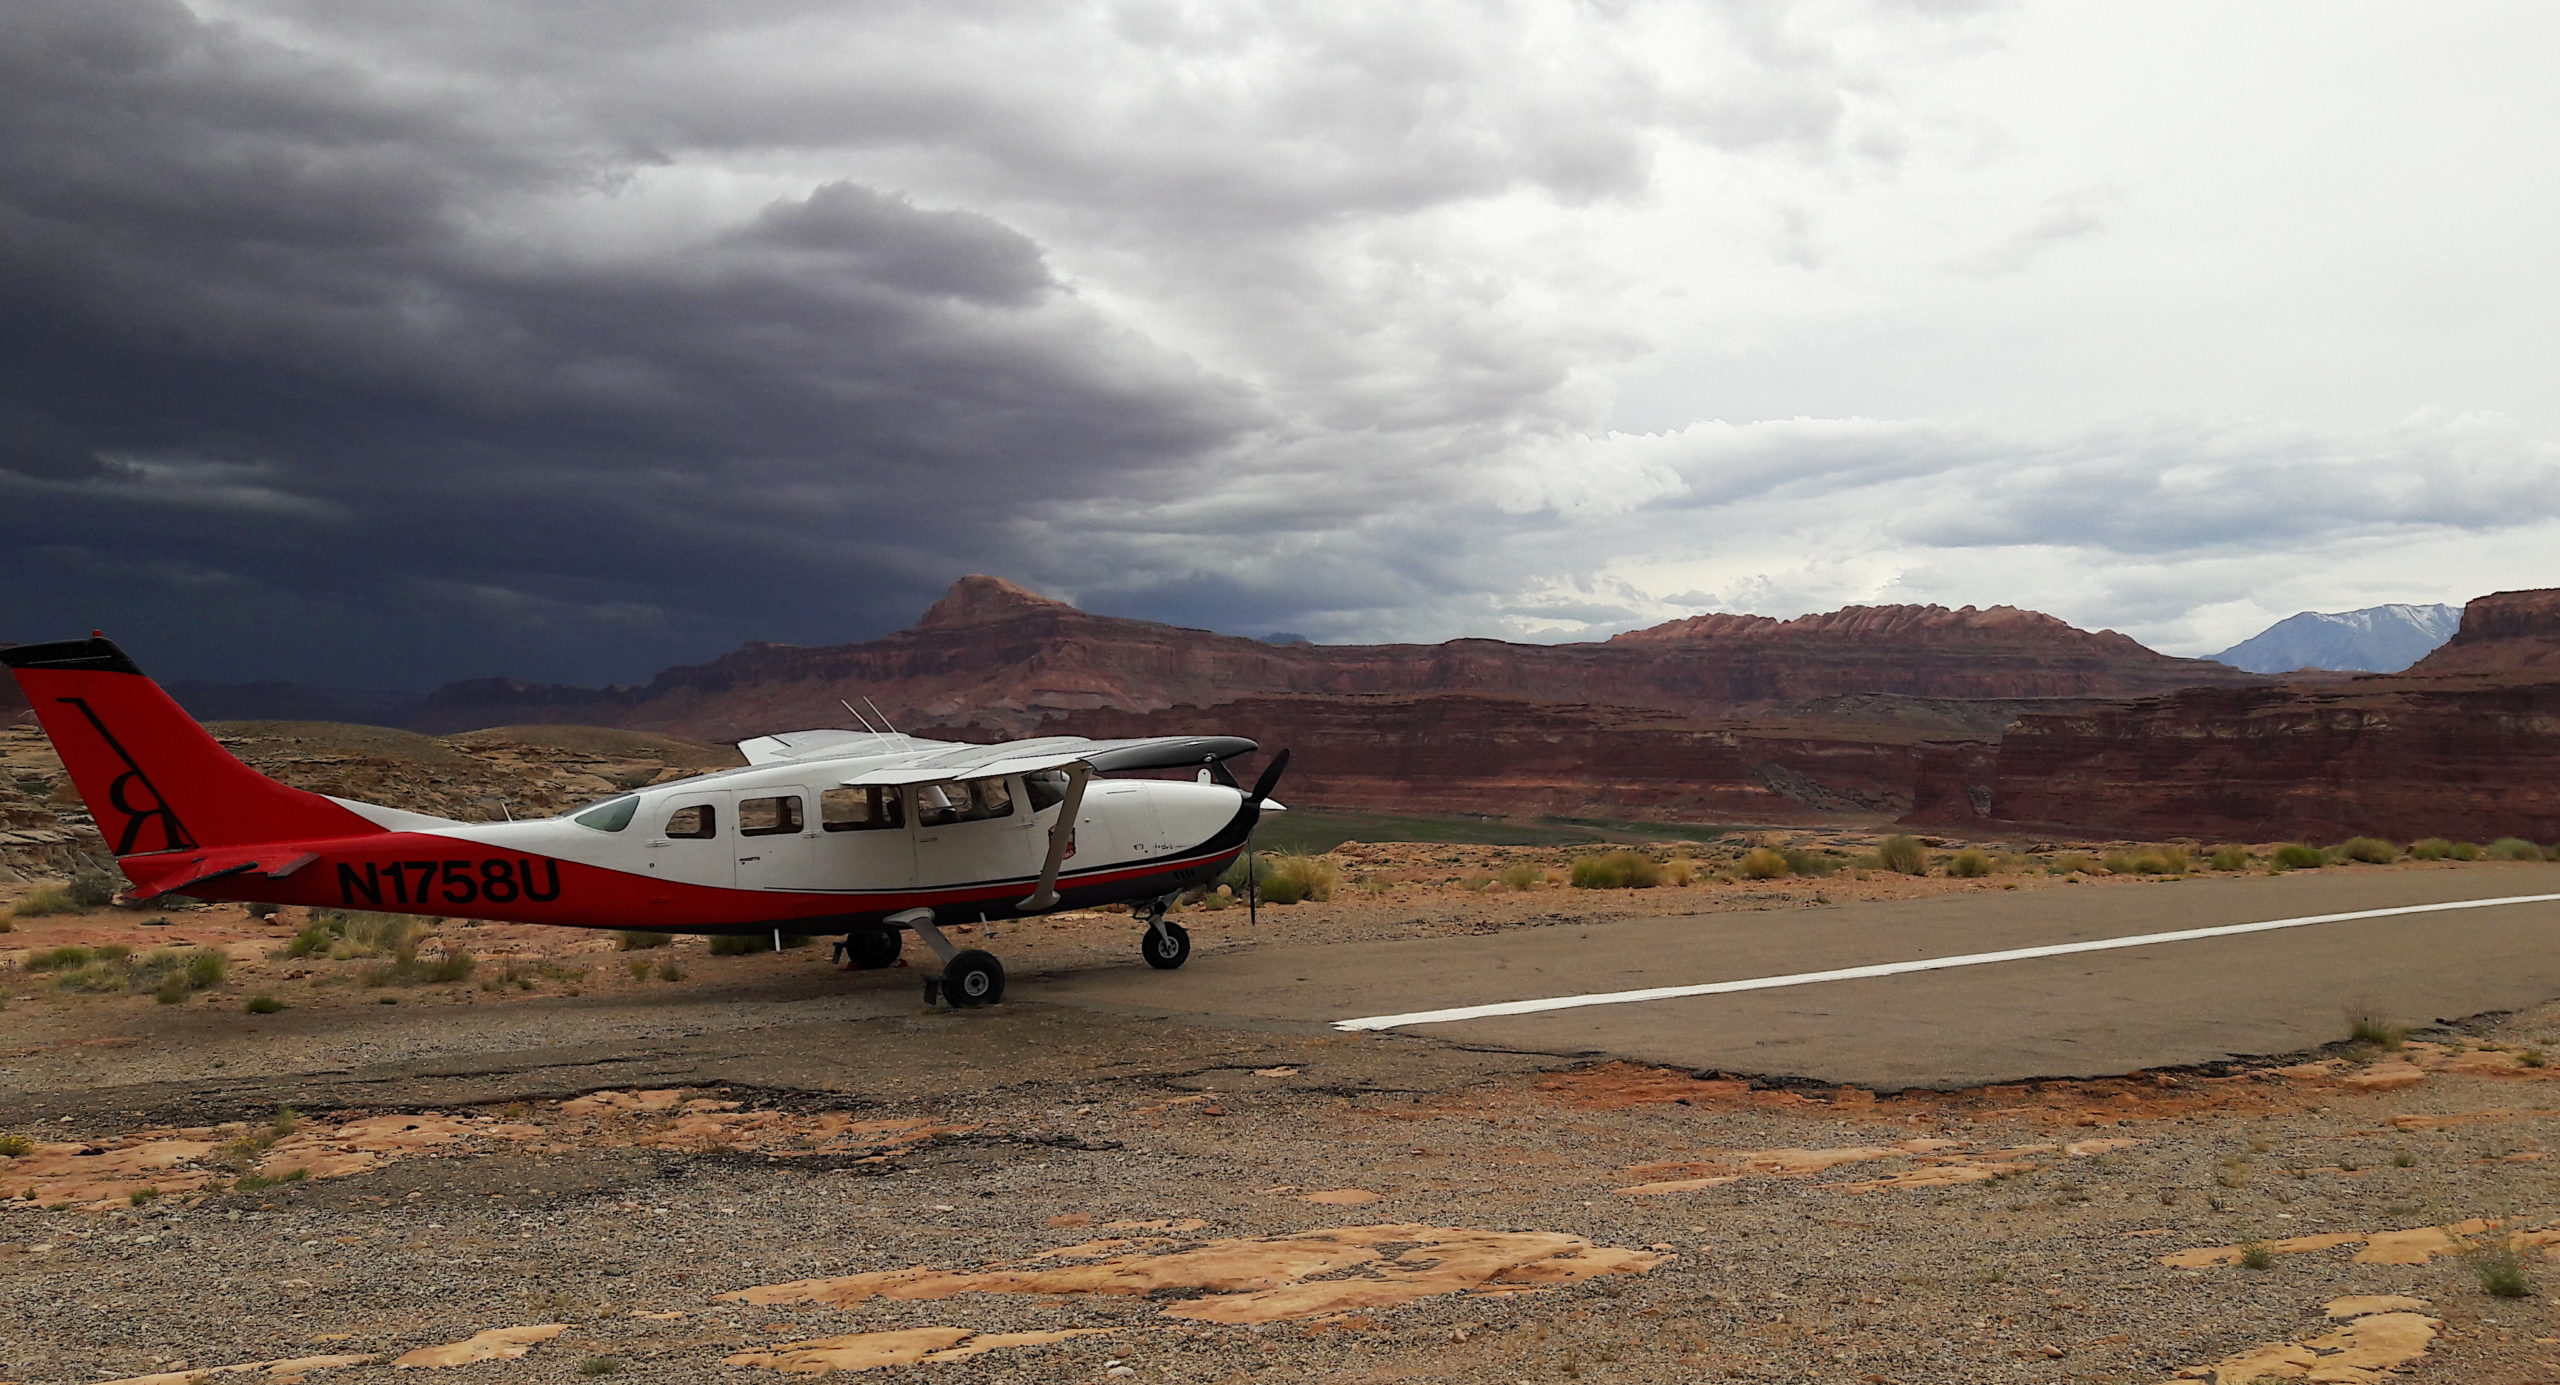 Redtail Plane in Moab